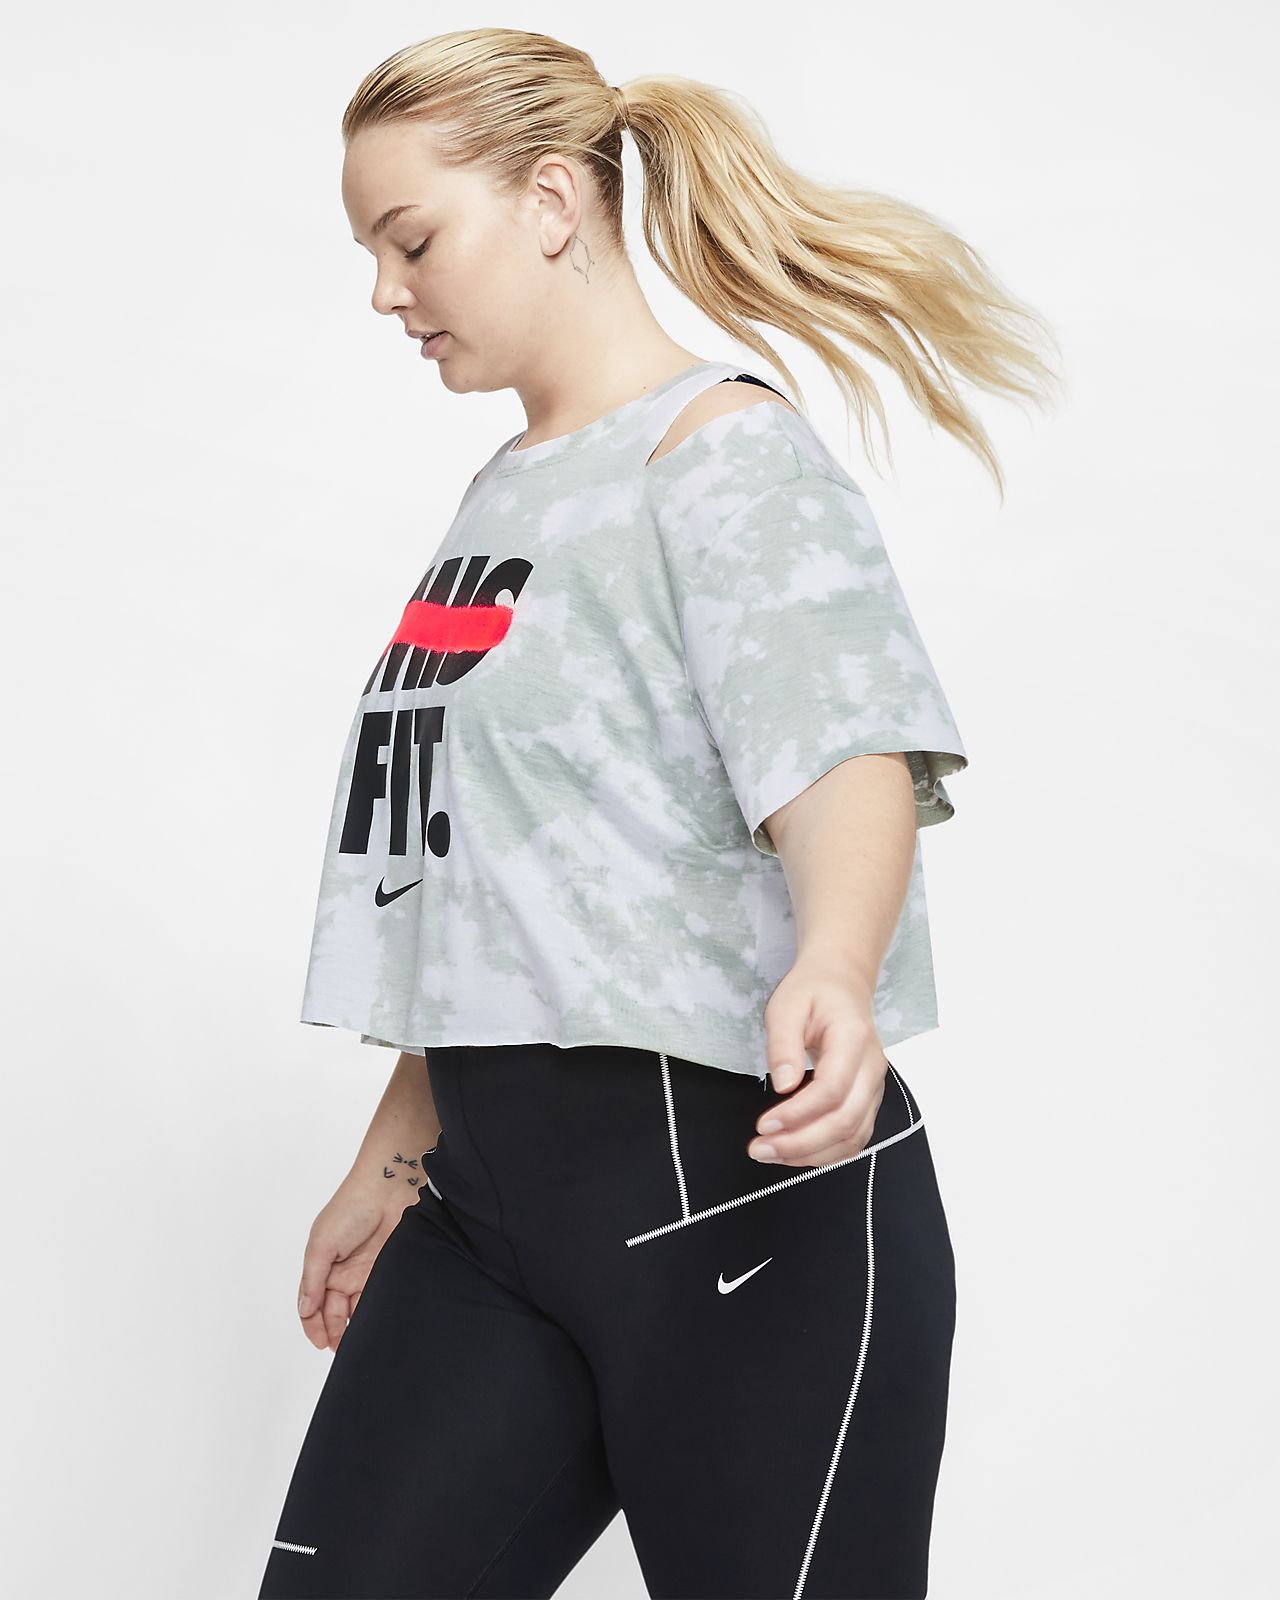 Nike Women's Short-Sleeve Graphic Training Top (Plus Size)